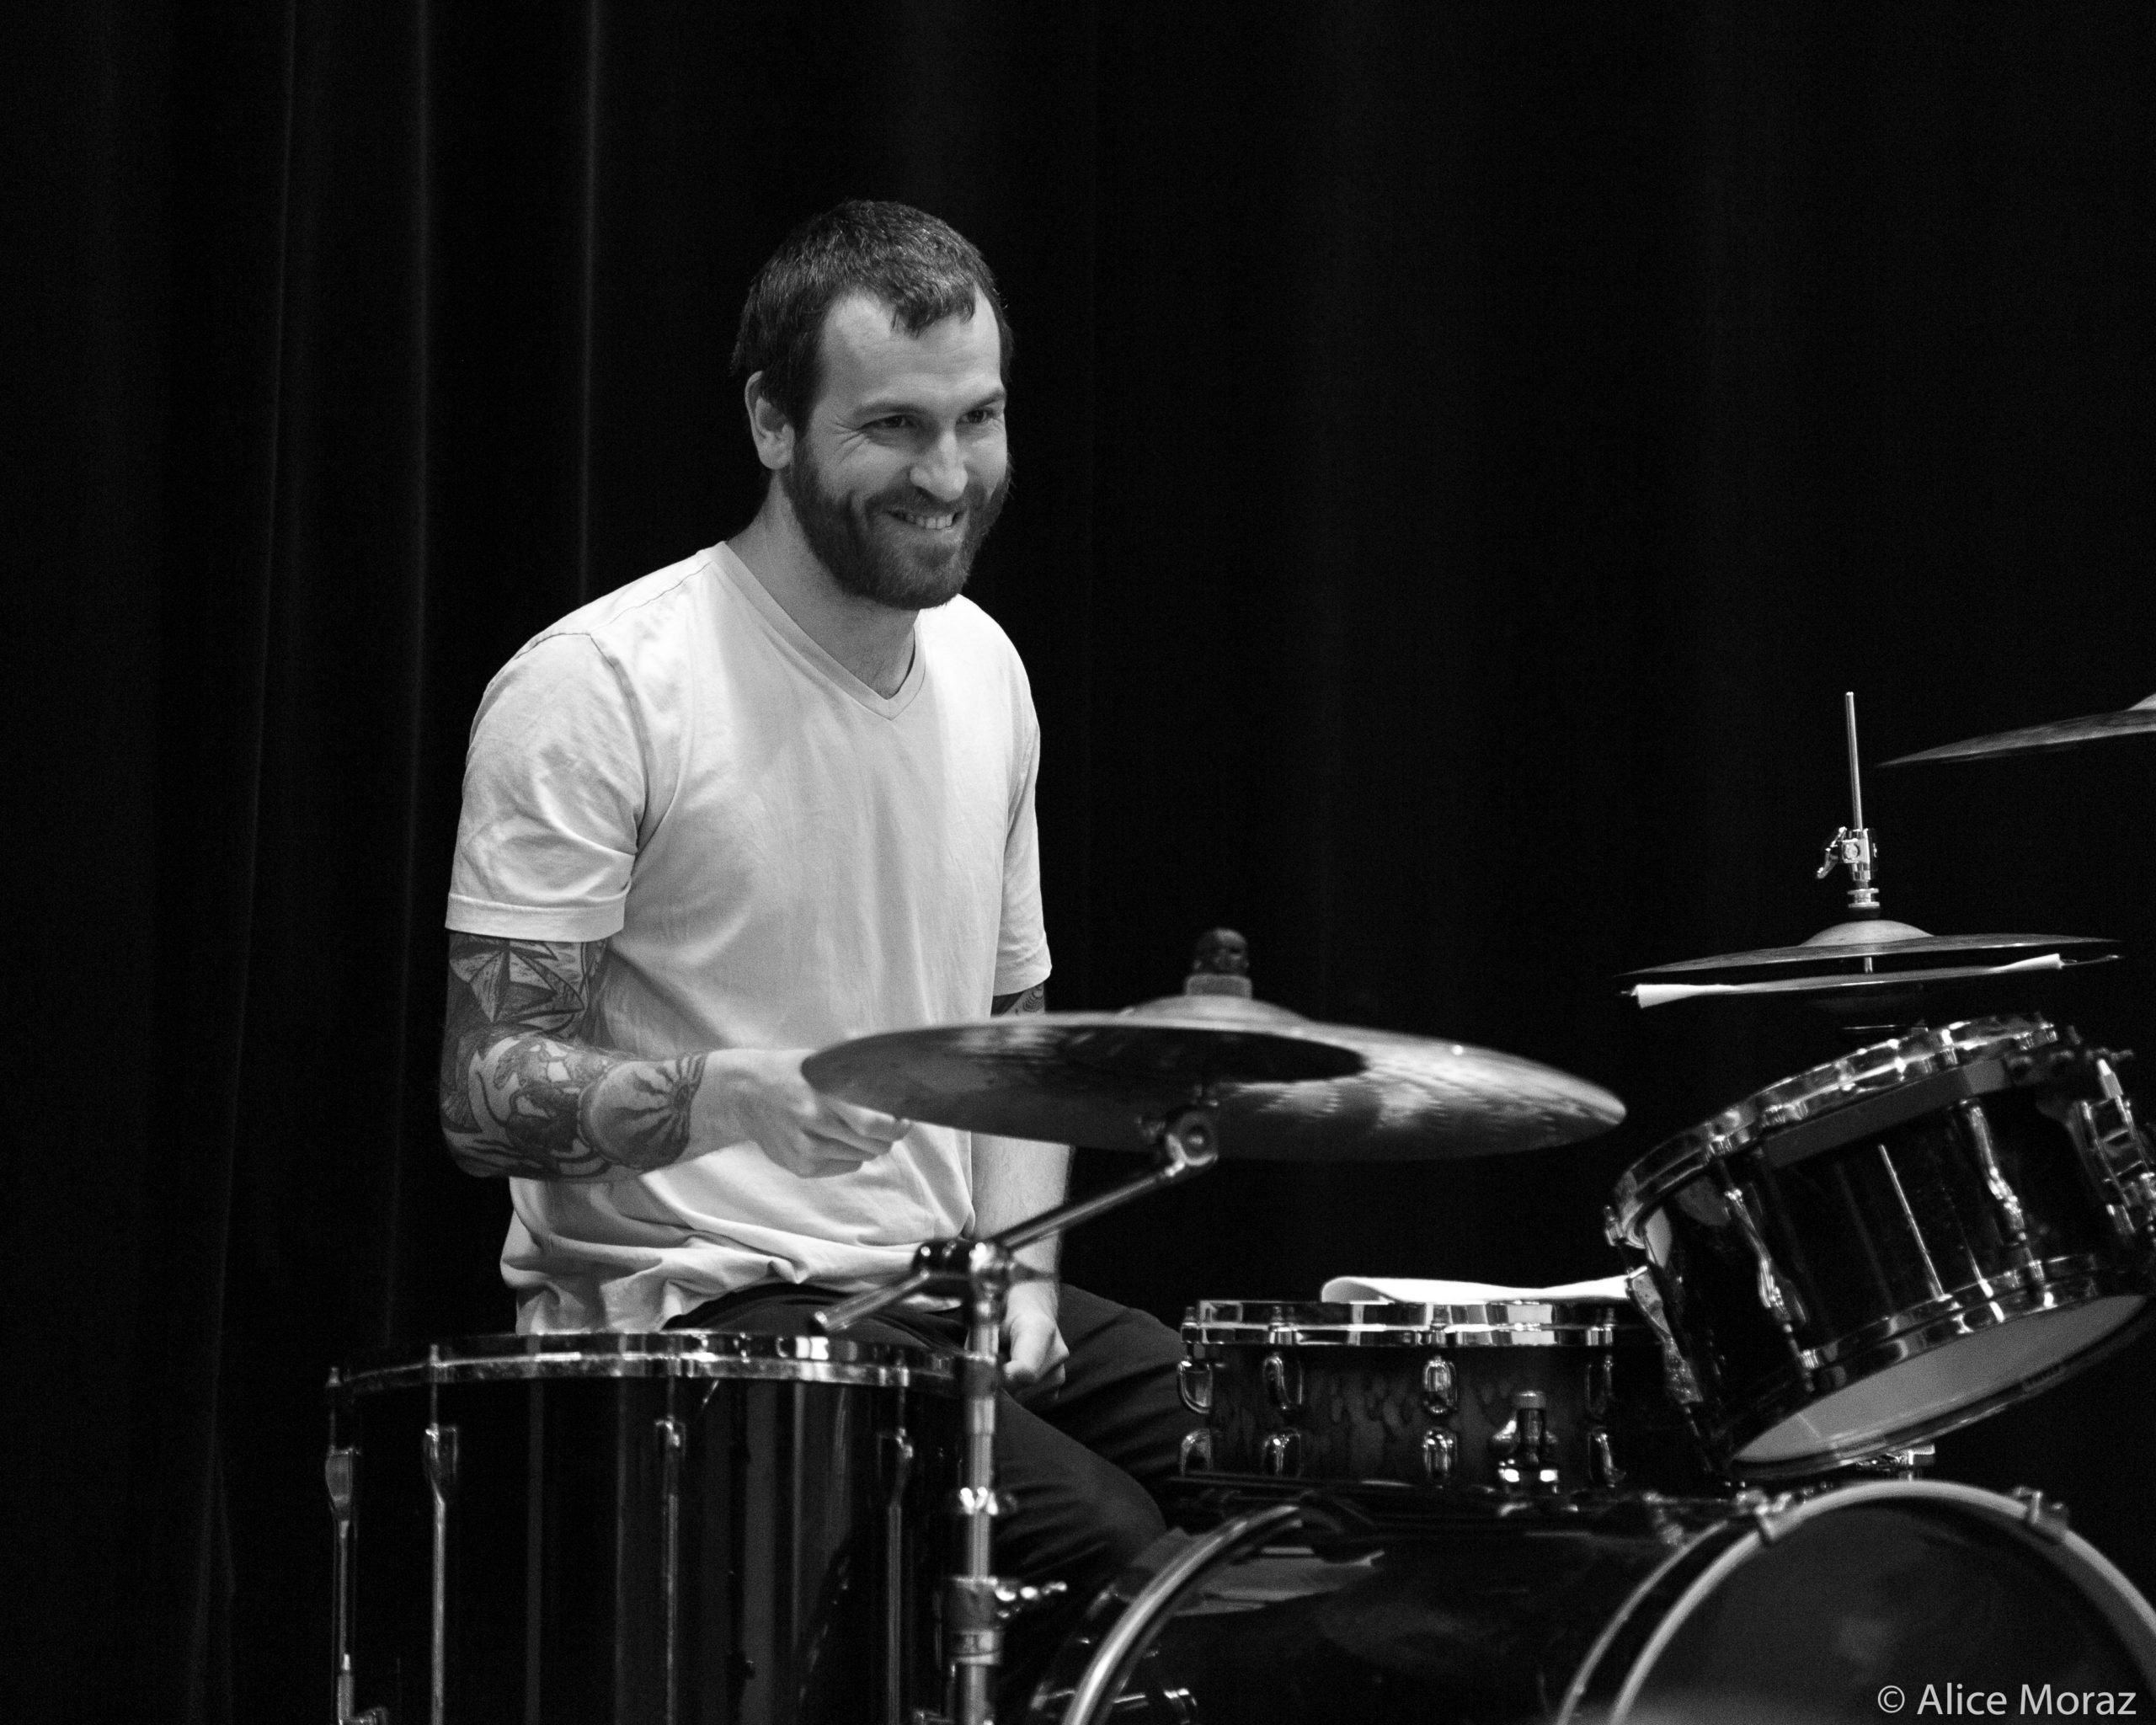 A drummer smiles knowingly.